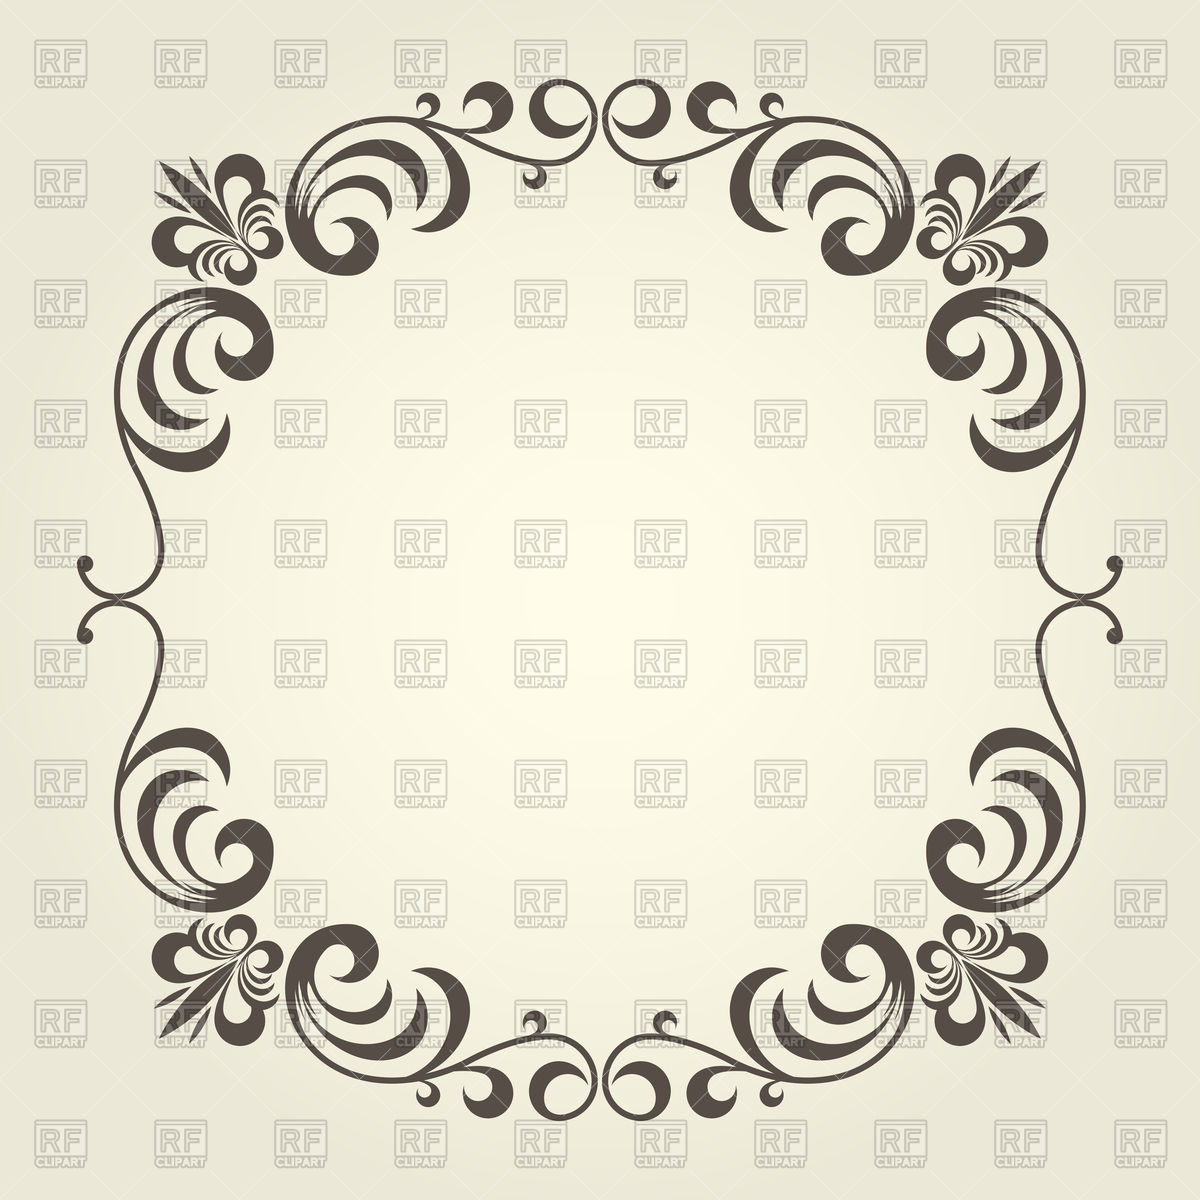 1200x1200 Flourish Square Frame With Ornate Curly Borders Vector Image